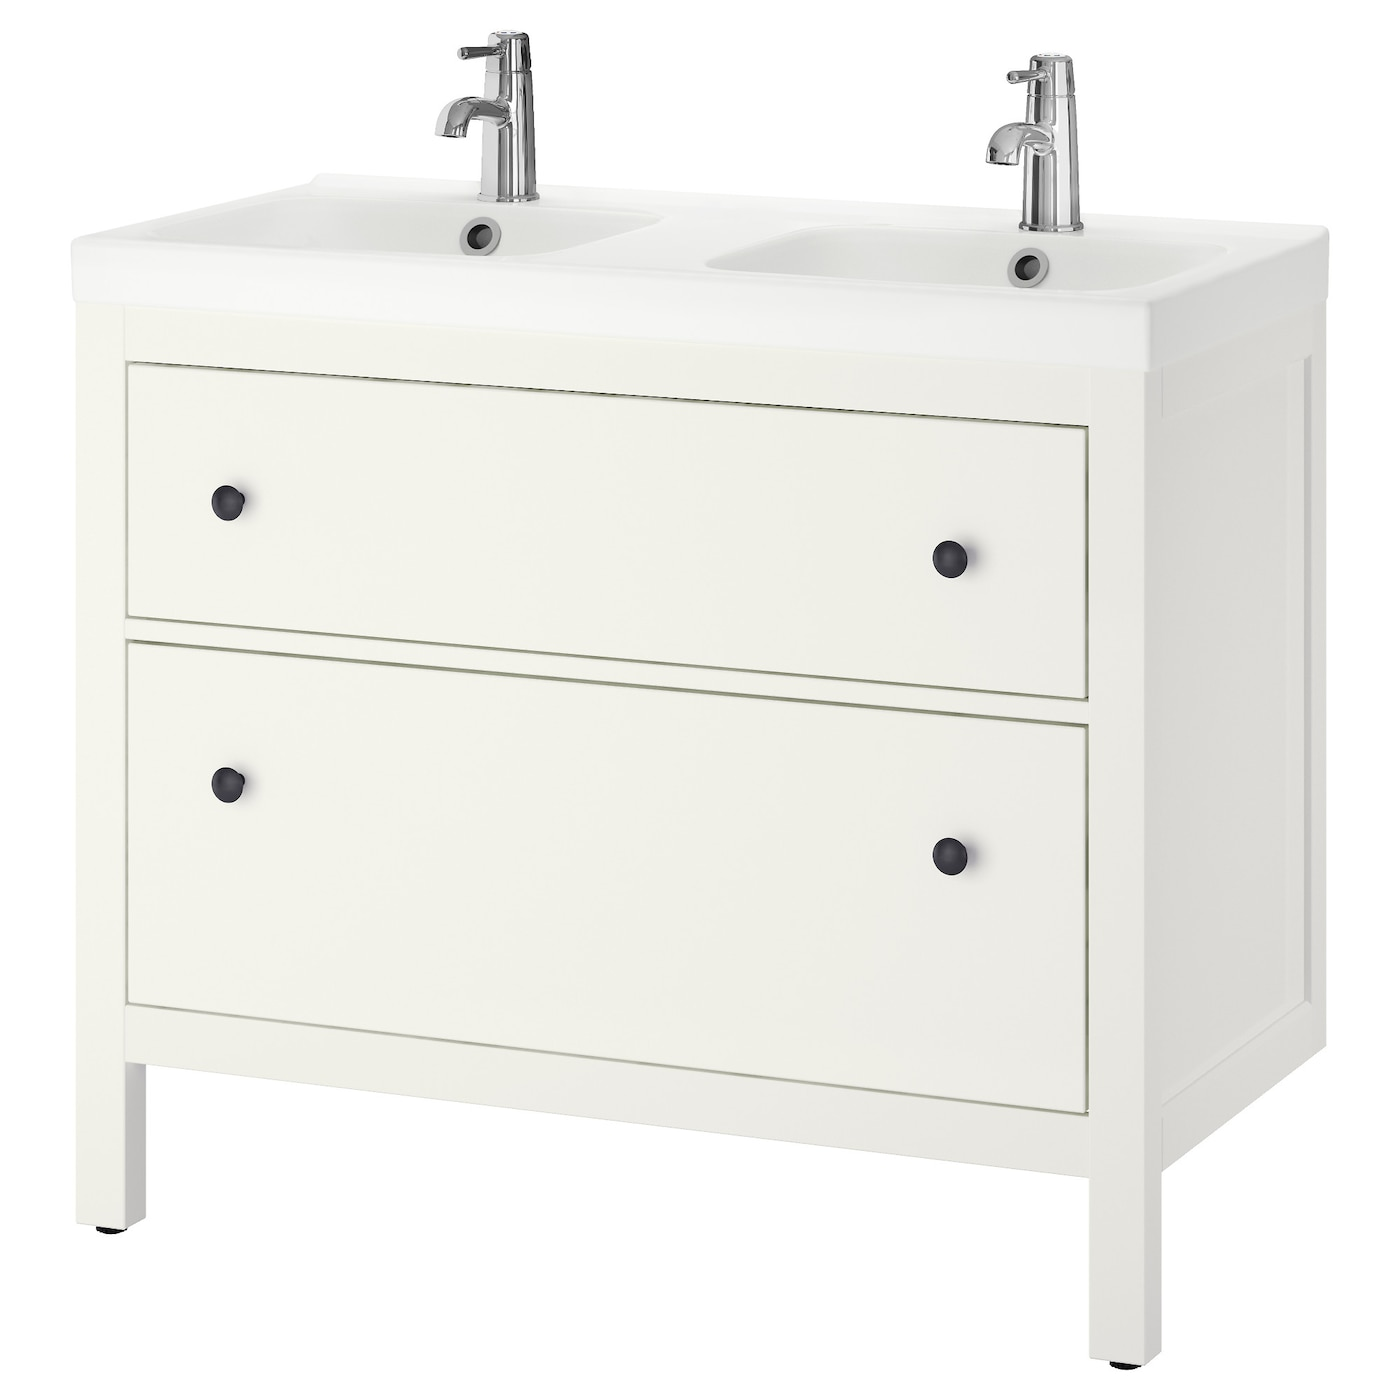 IKEA ODENSVIK/HEMNES wash-stand with 2 drawers